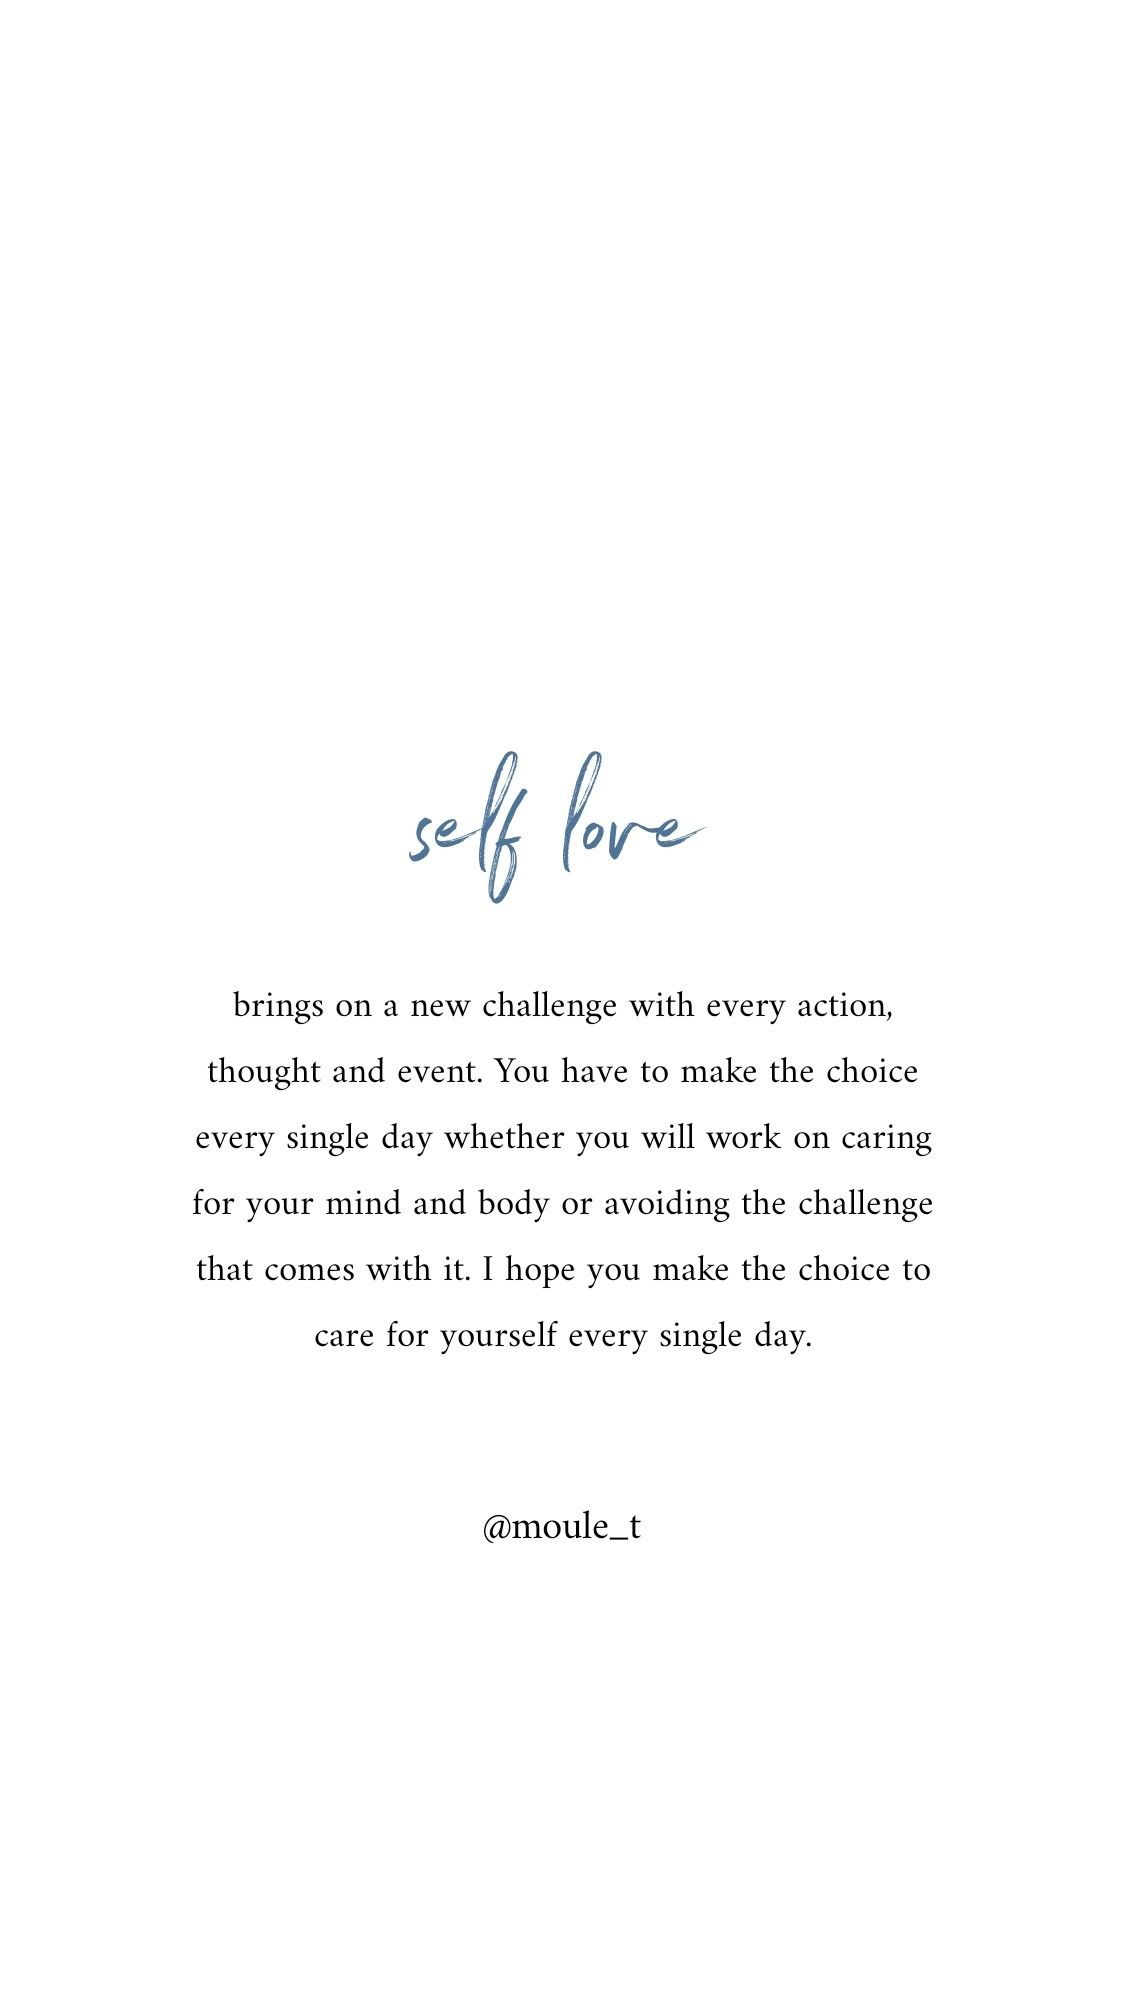 Self love will be your greatest challenge